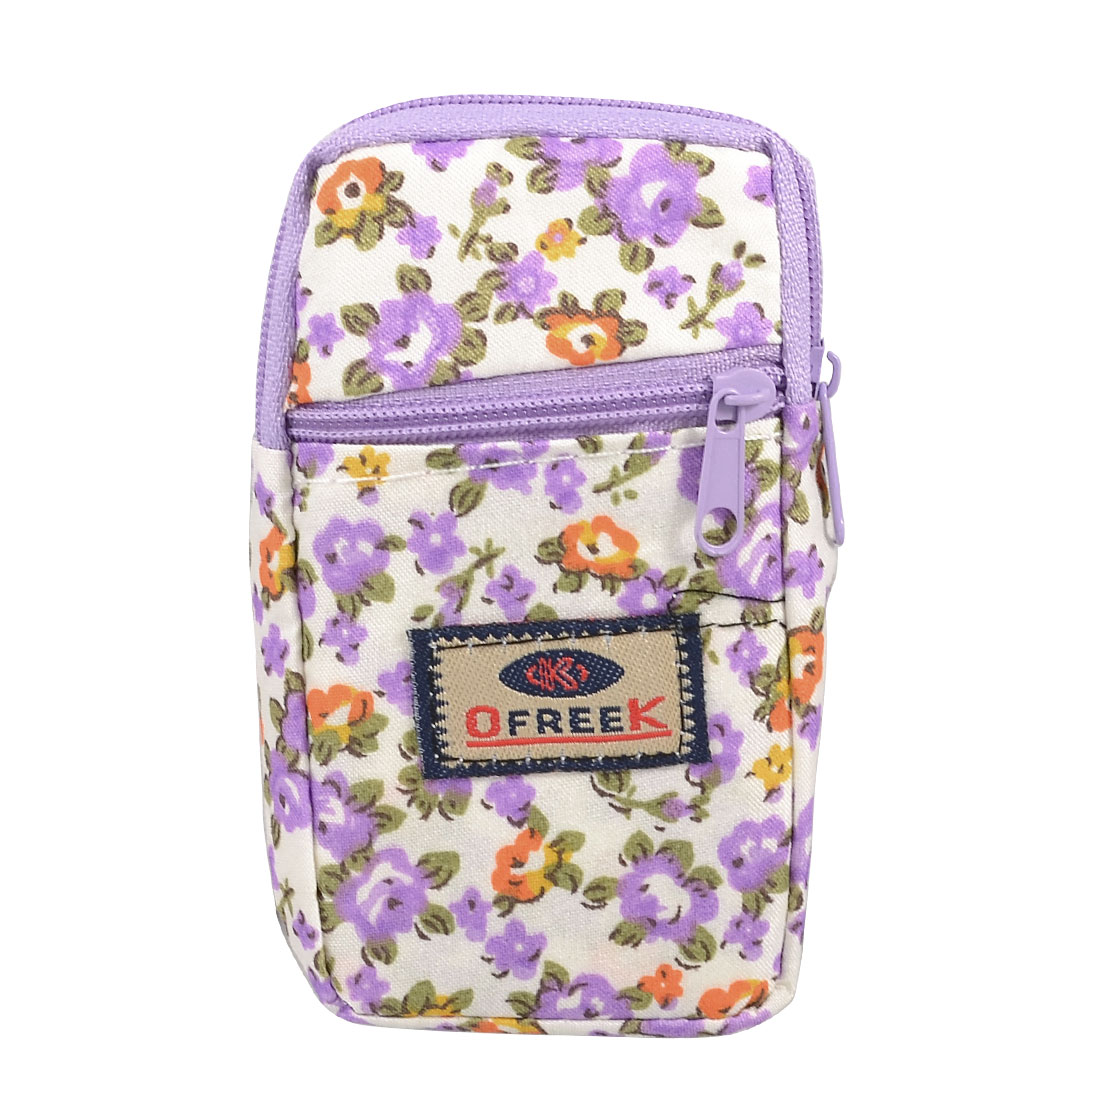 Lavender Floral Print 2 Pockets Zip up Cell Phone Wrist Bag Pouch